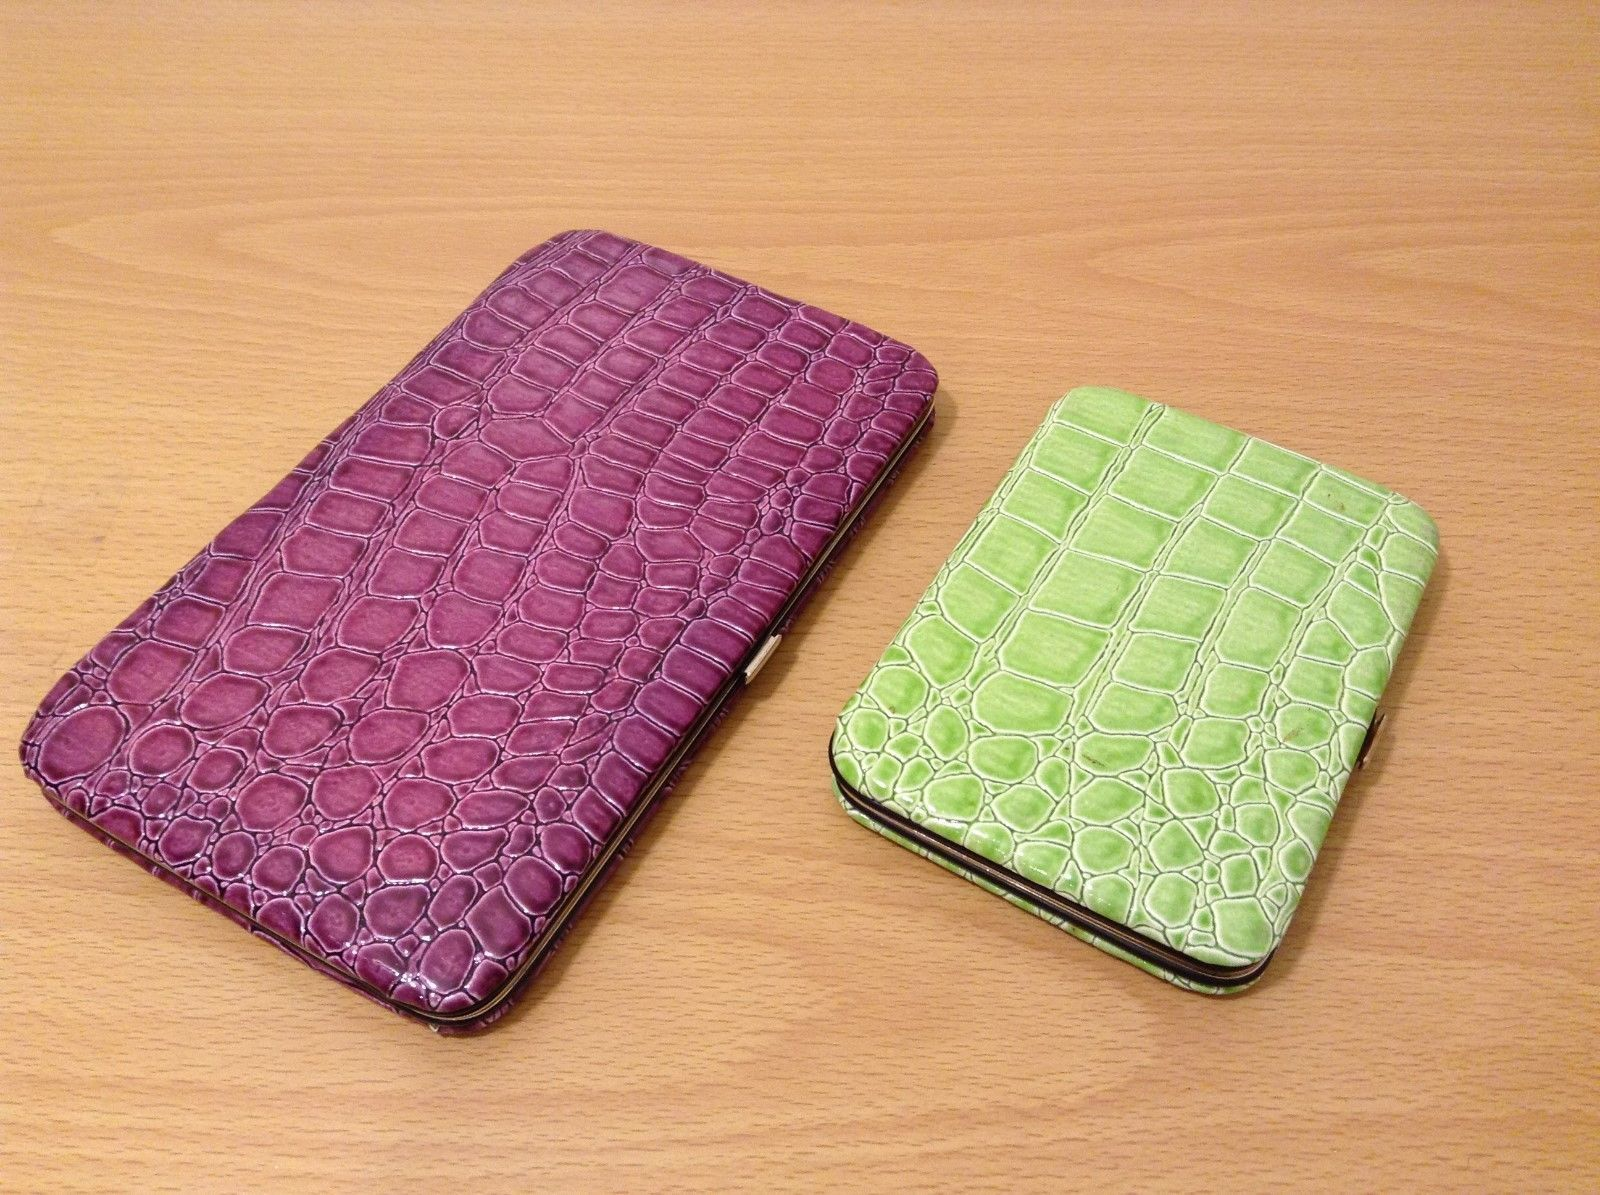 Ladies Crocodile Pattern Wallet/Organizer Choice of LG/SM Sz Purple/Lt Green